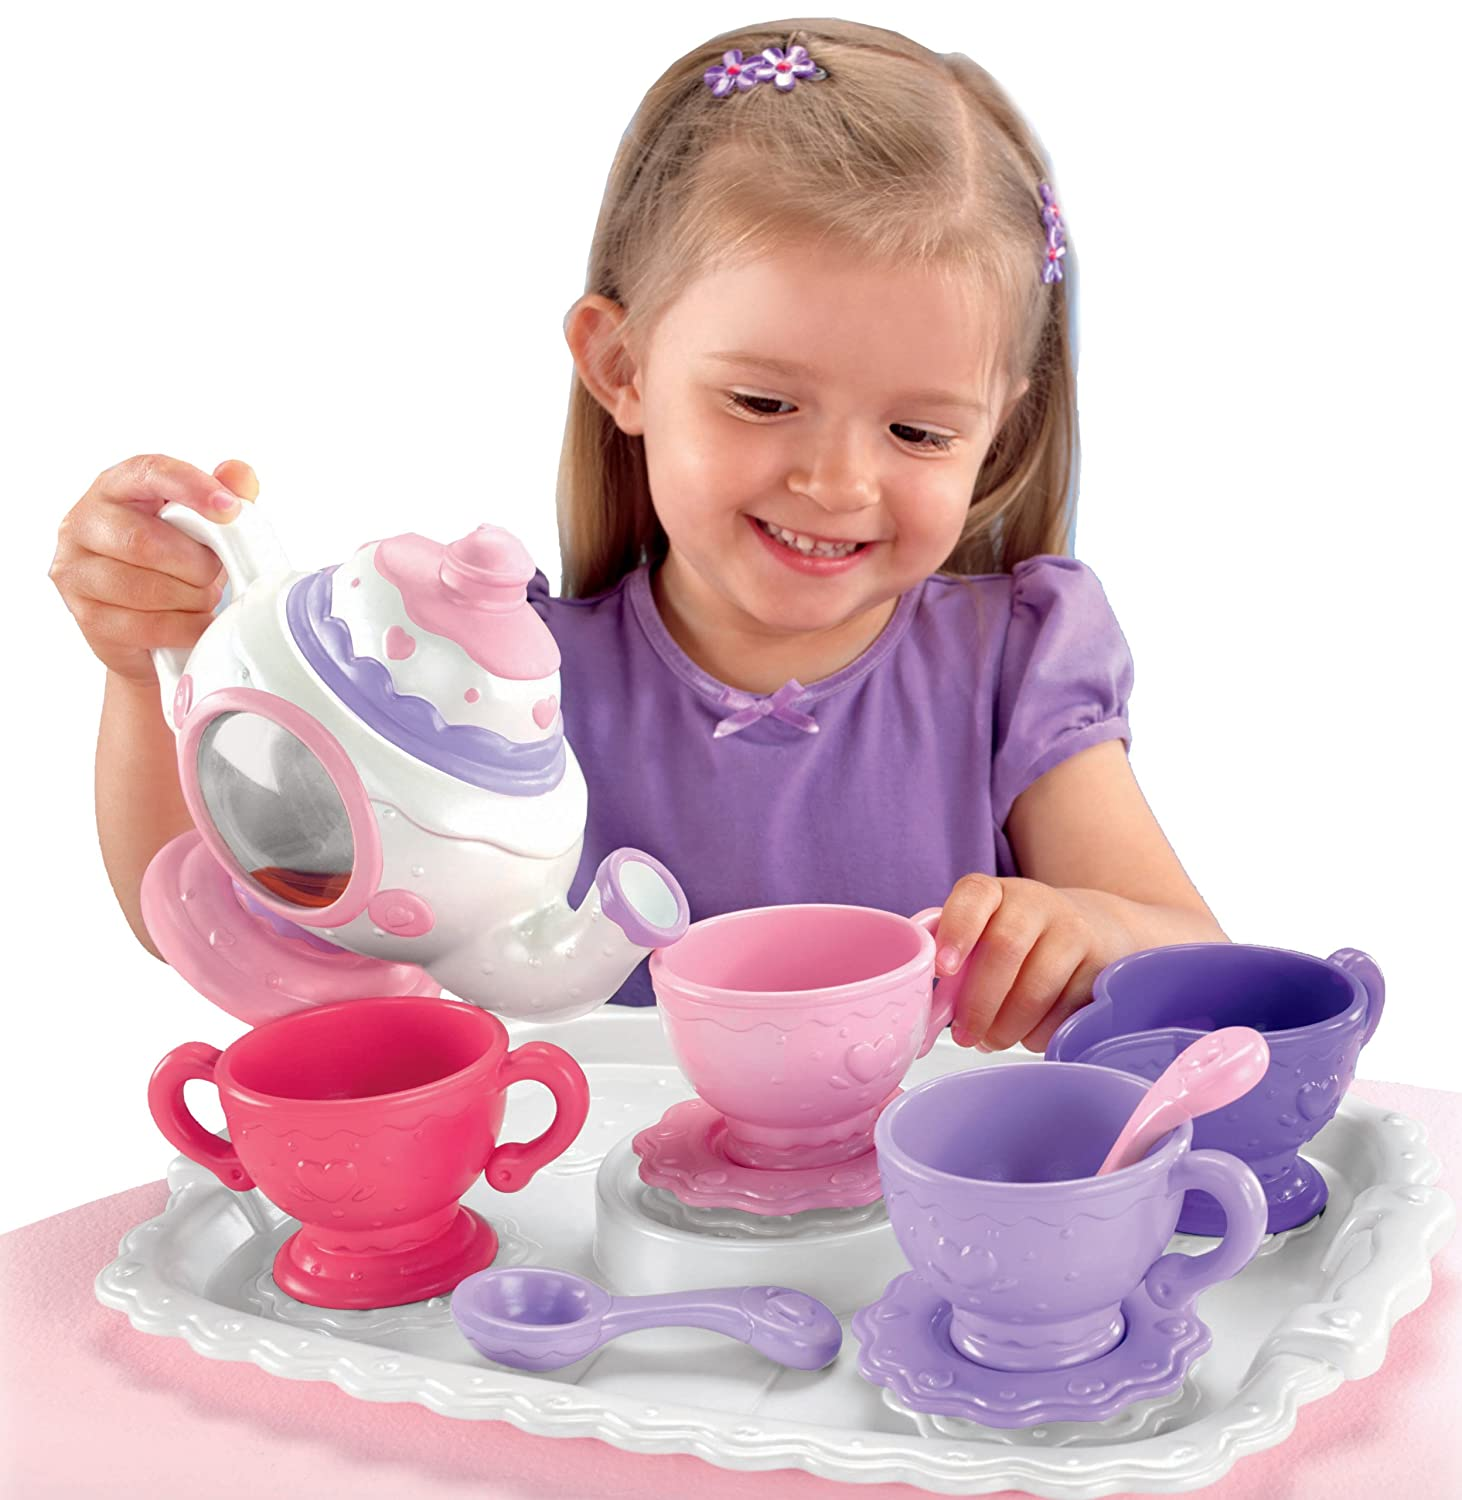 mother knows best reviews toy tea sets. Black Bedroom Furniture Sets. Home Design Ideas